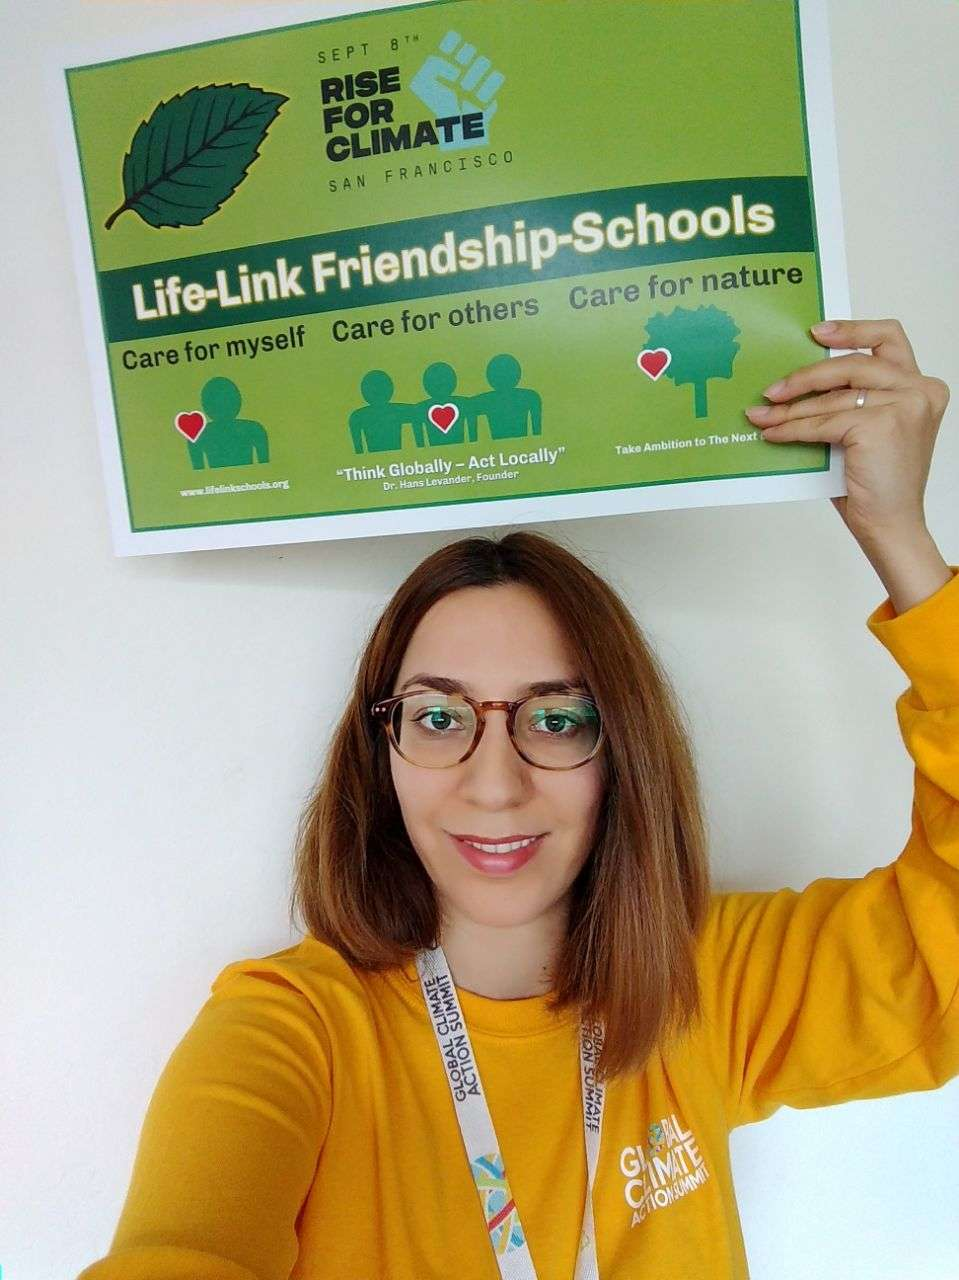 Why Become a Life-Link School? - Join students around the world working to build a sustainable future. Working together can make a true difference. And, of course, be inspired by a Life-Link conference.